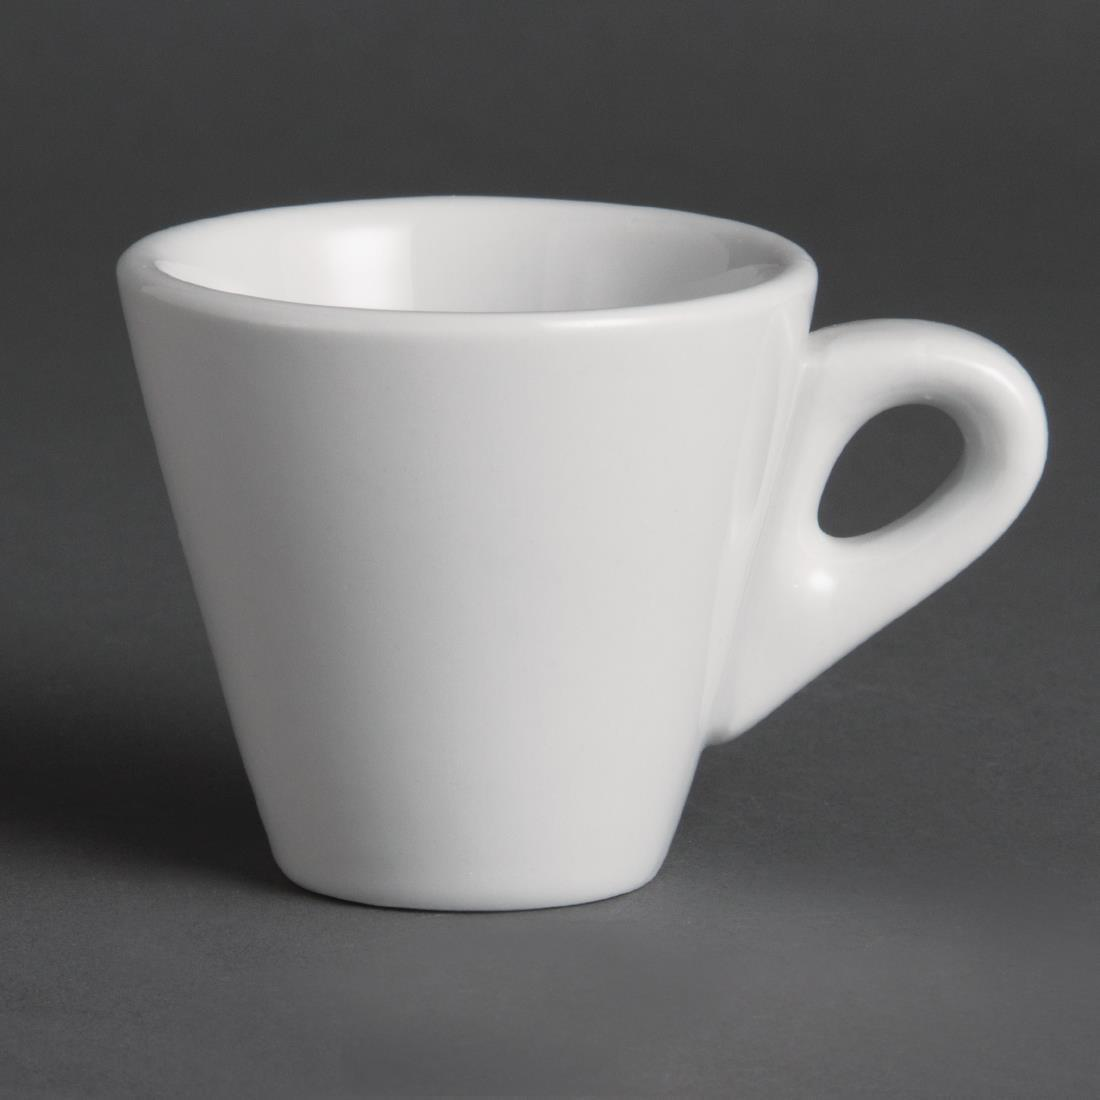 Olympia Whiteware Conical Espresso Cups 60ml 2oz